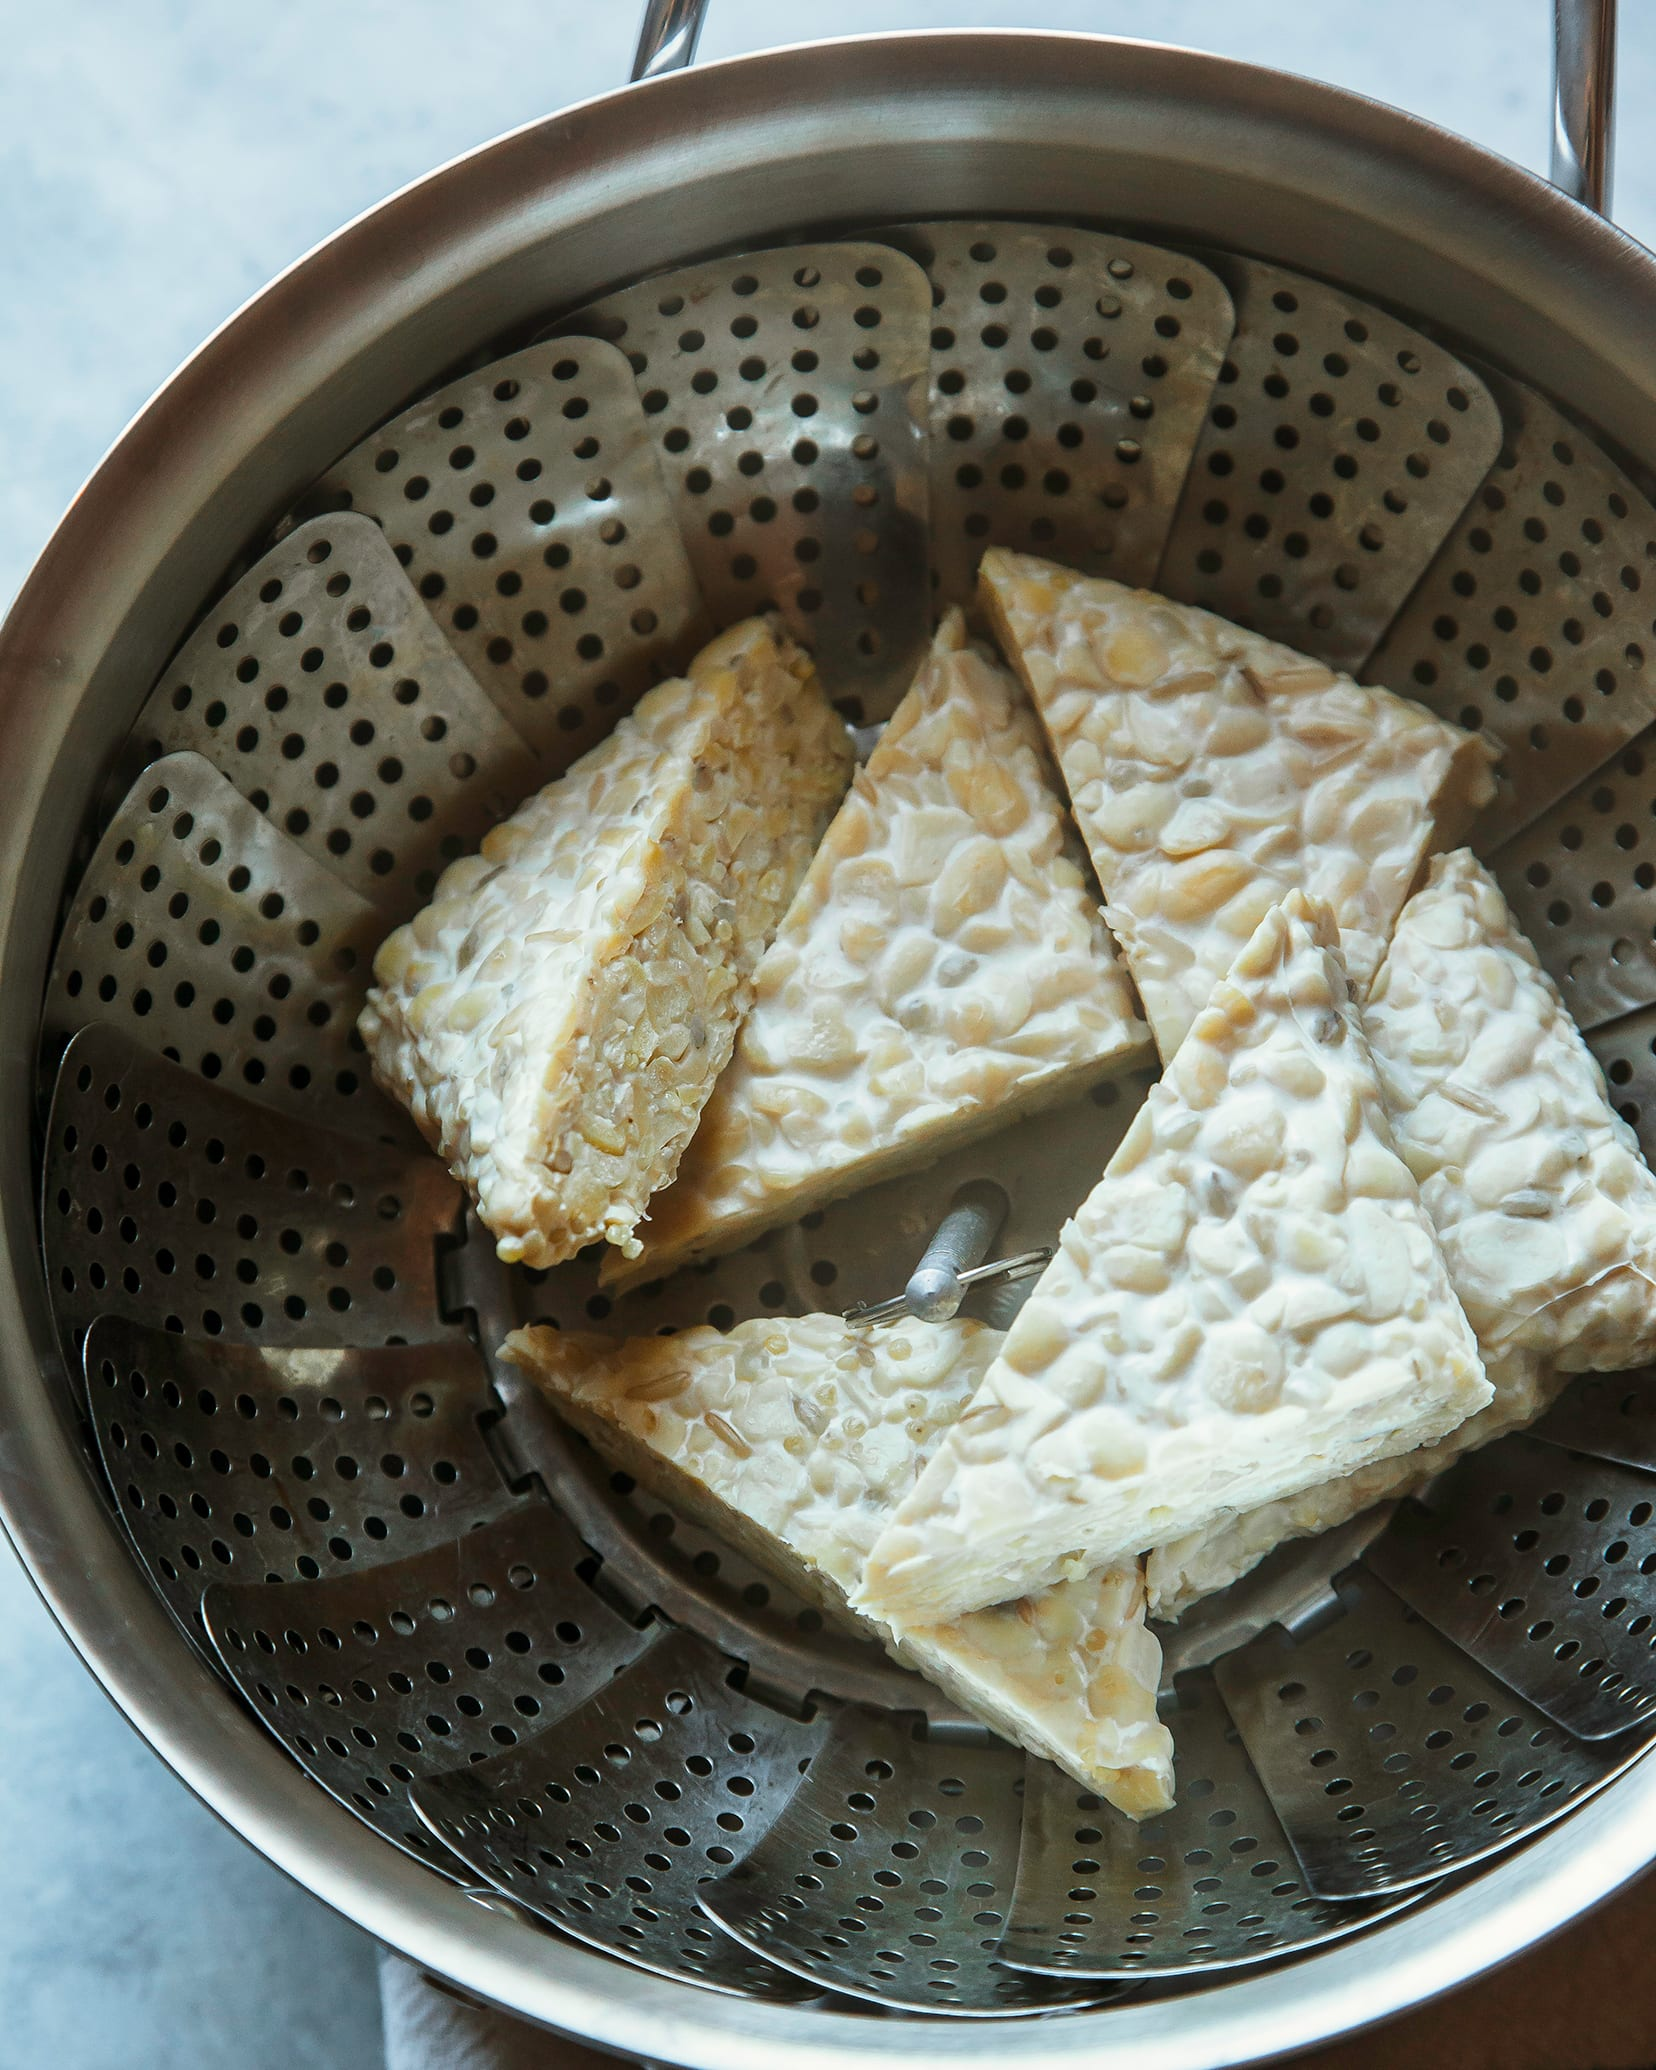 Image shows triangular pieces of tempeh in a steamer basket.